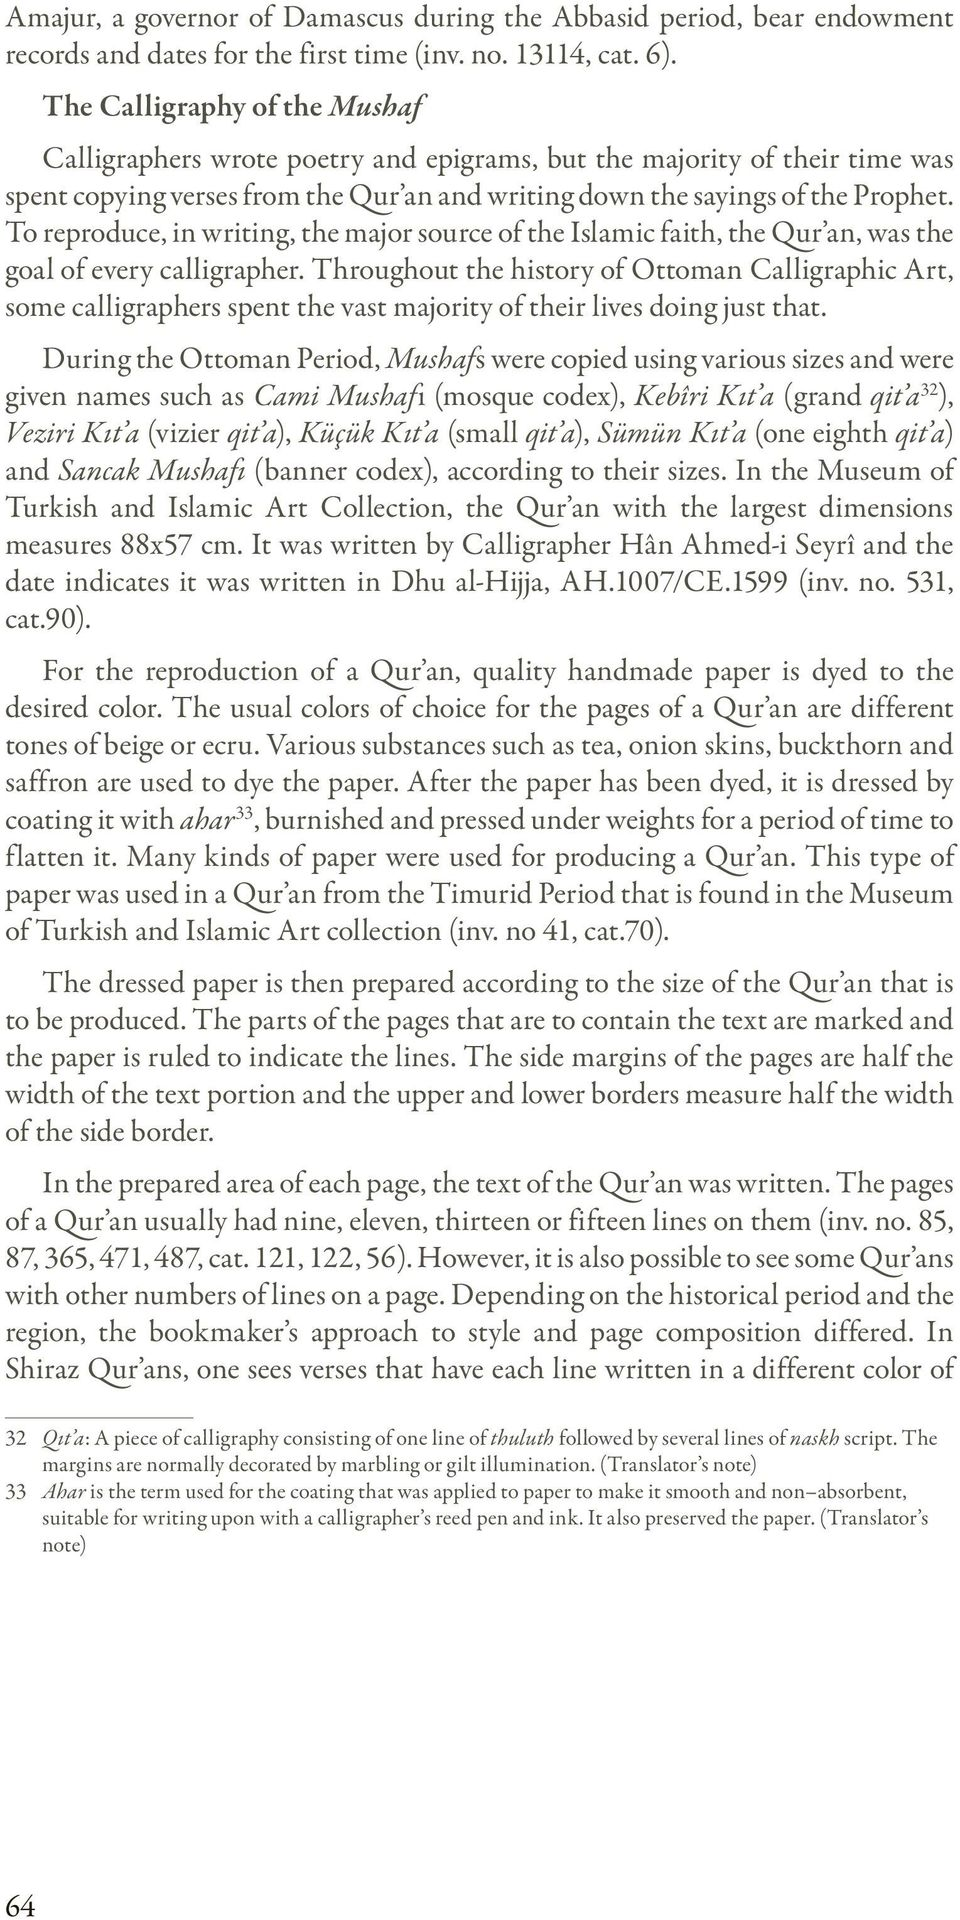 The Calligraphy And Calligraphers Of Qur An Pdf Stambul Mini 30 Juz To Reproduce In Writing Major Source Islamic Faith